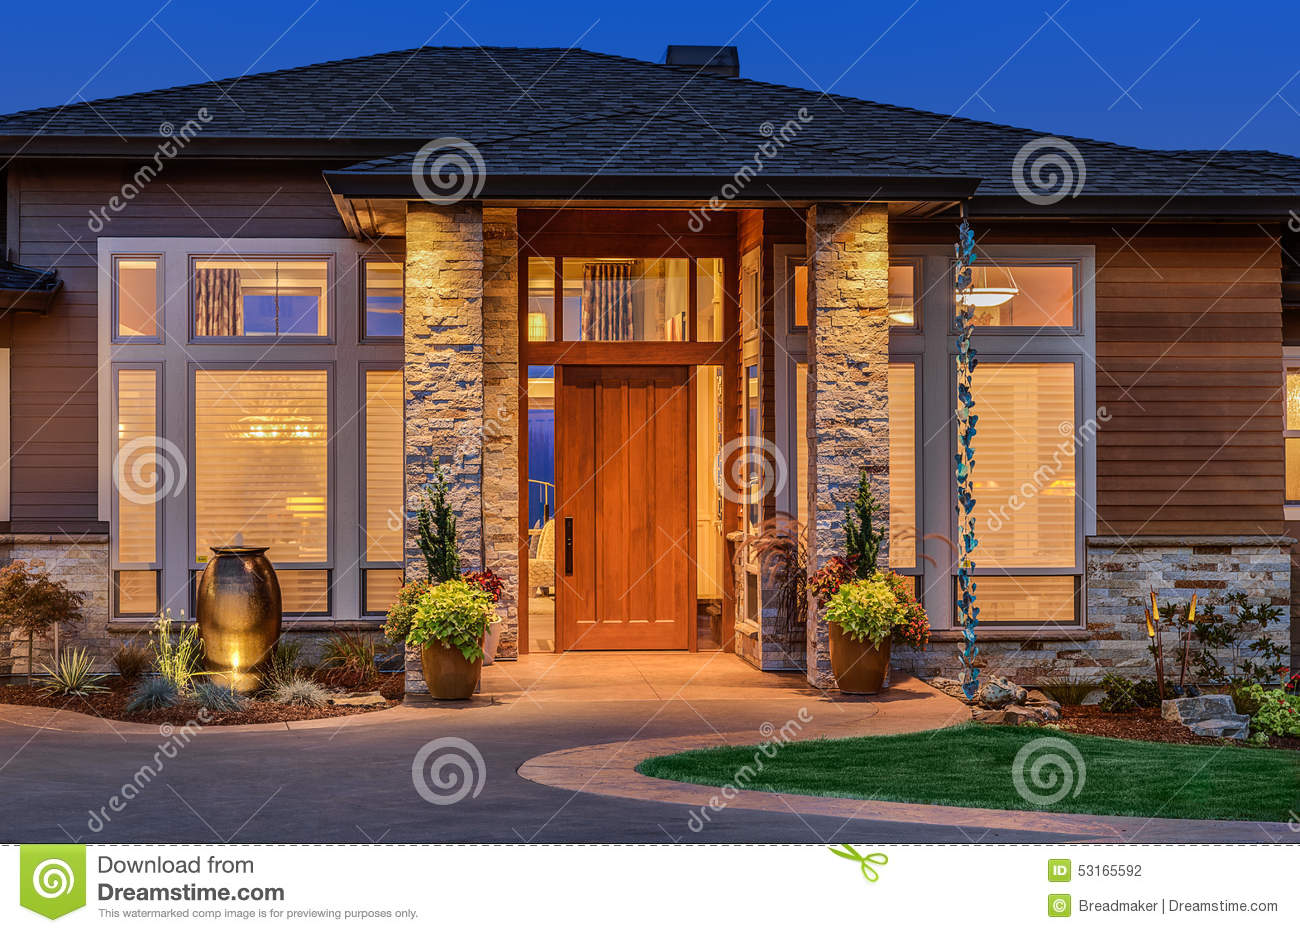 Front Elevation Luxury Homes : Beautiful luxury home exterior in evening with deep blue